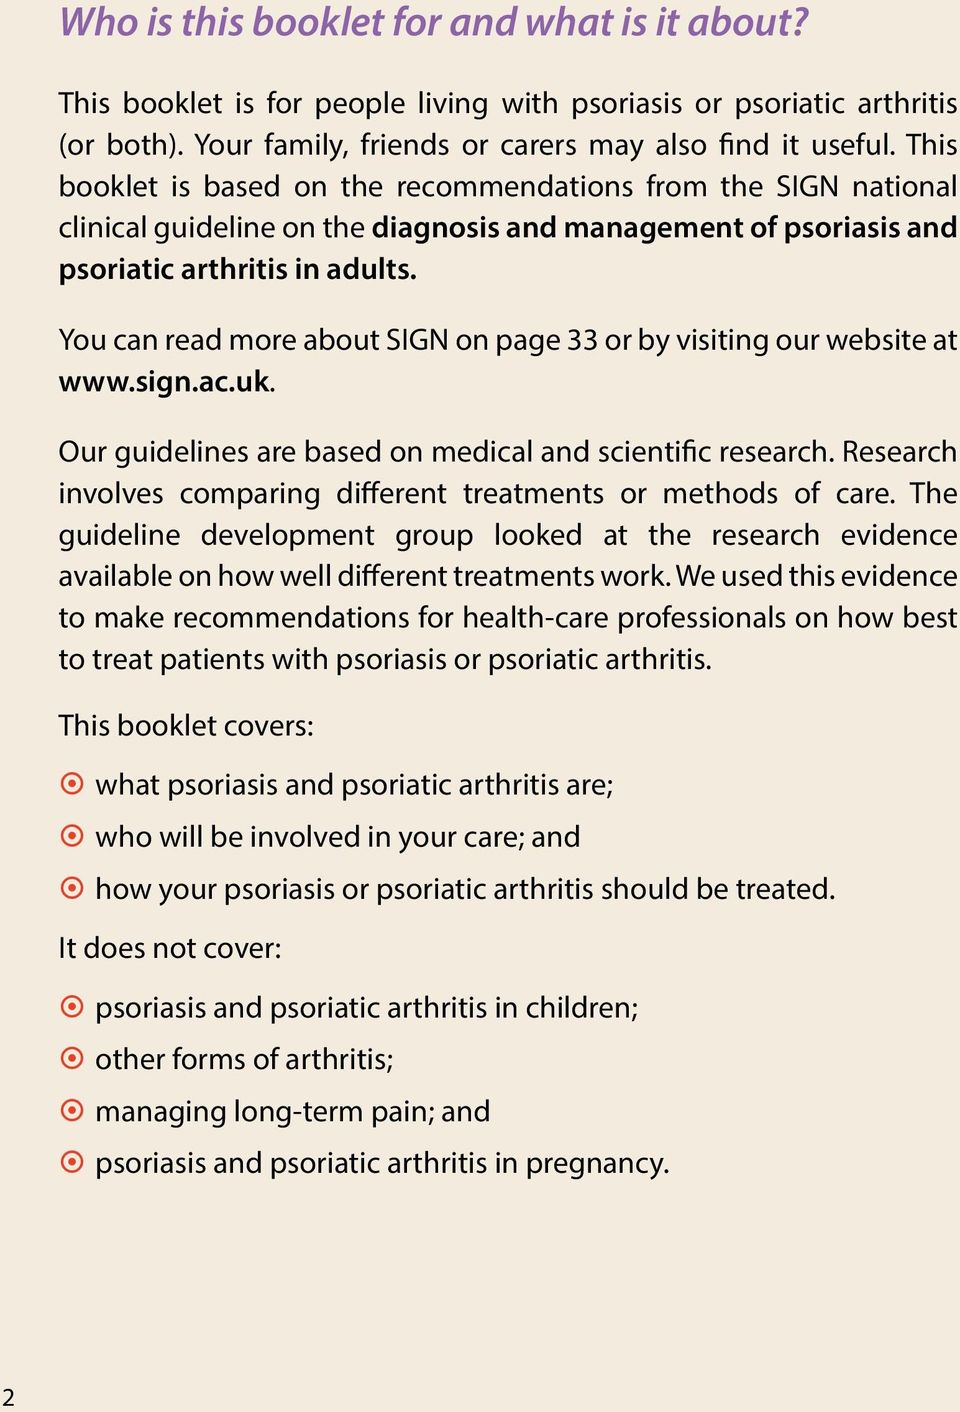 You can read more about SIGN on page 33 or by visiting our website at www.sign.ac.uk. Our guidelines are based on medical and scientific research.